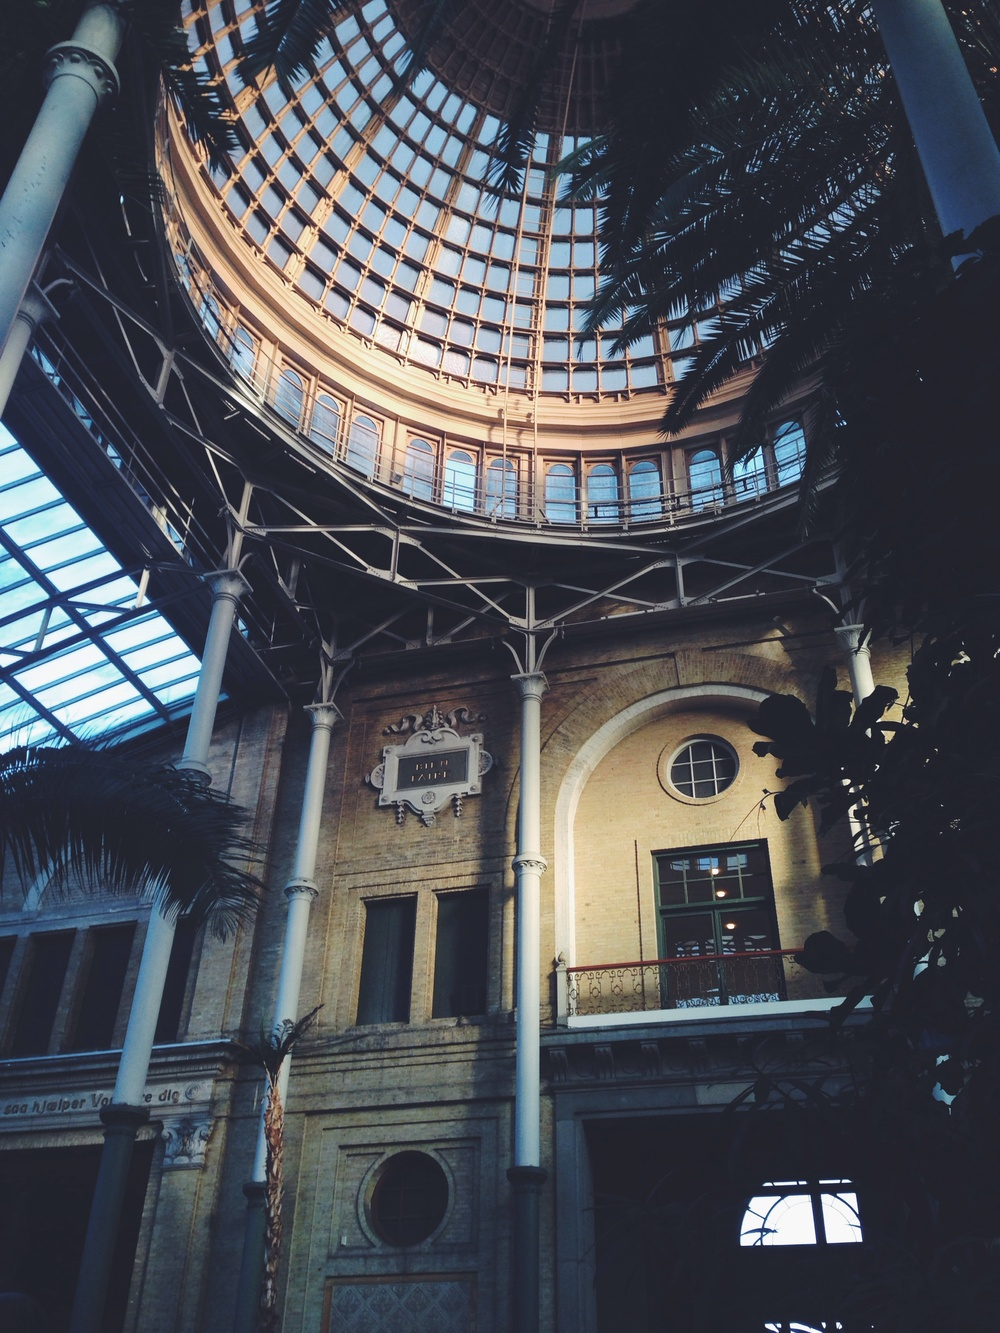 The Glyptotek's courtyard